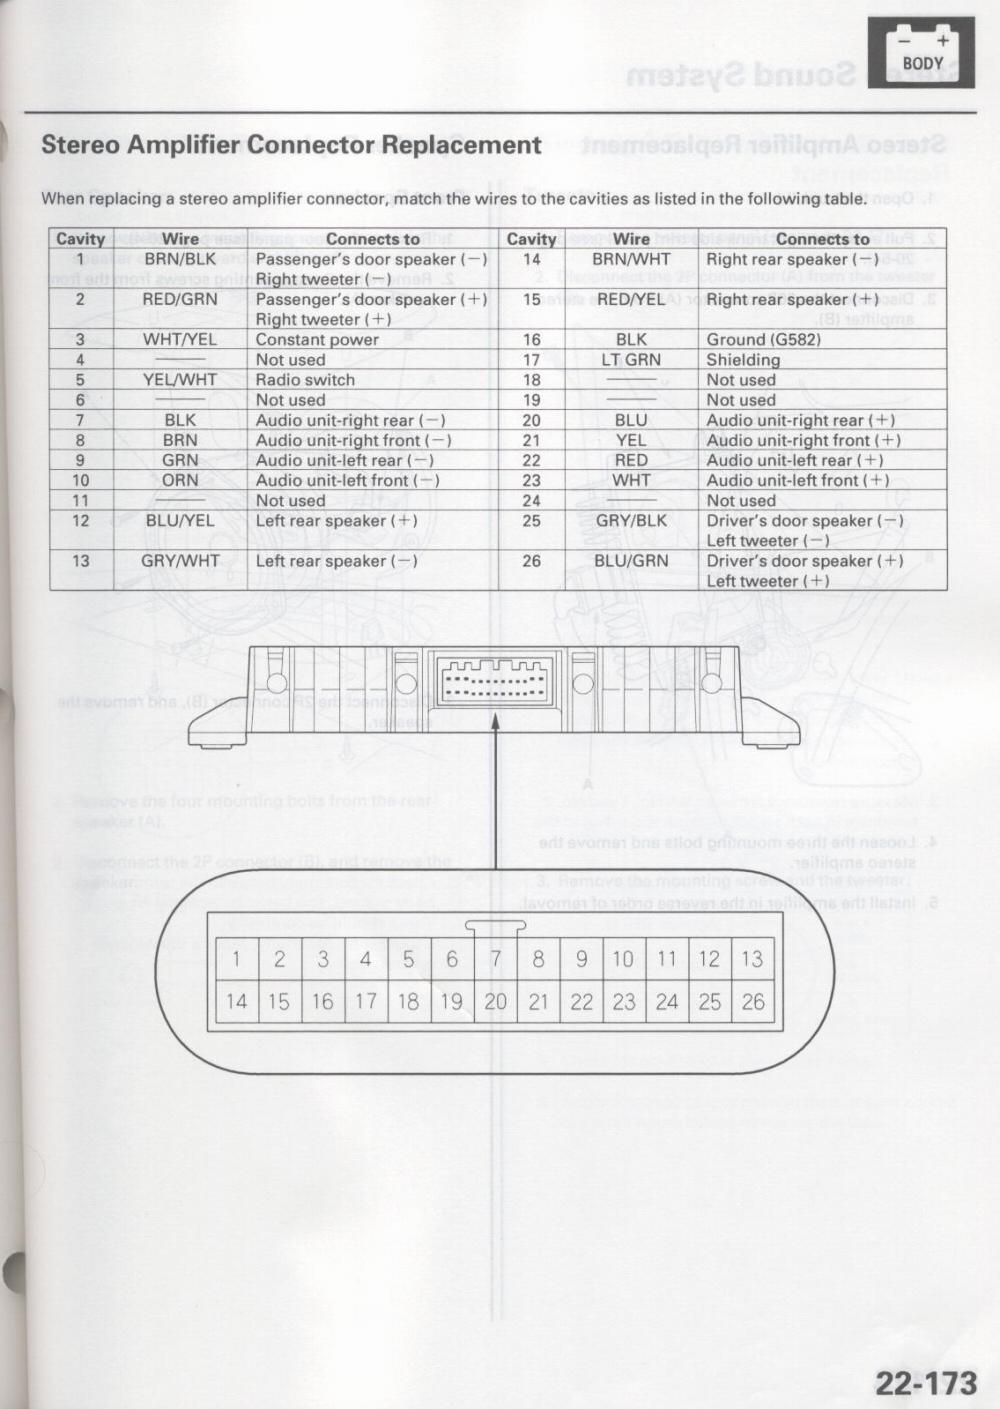 Acura 2002 TL car stereo amplifier wiring diagram harness acura stereo wiring diagram acura wiring diagrams instruction acura tl wiring diagram at gsmx.co